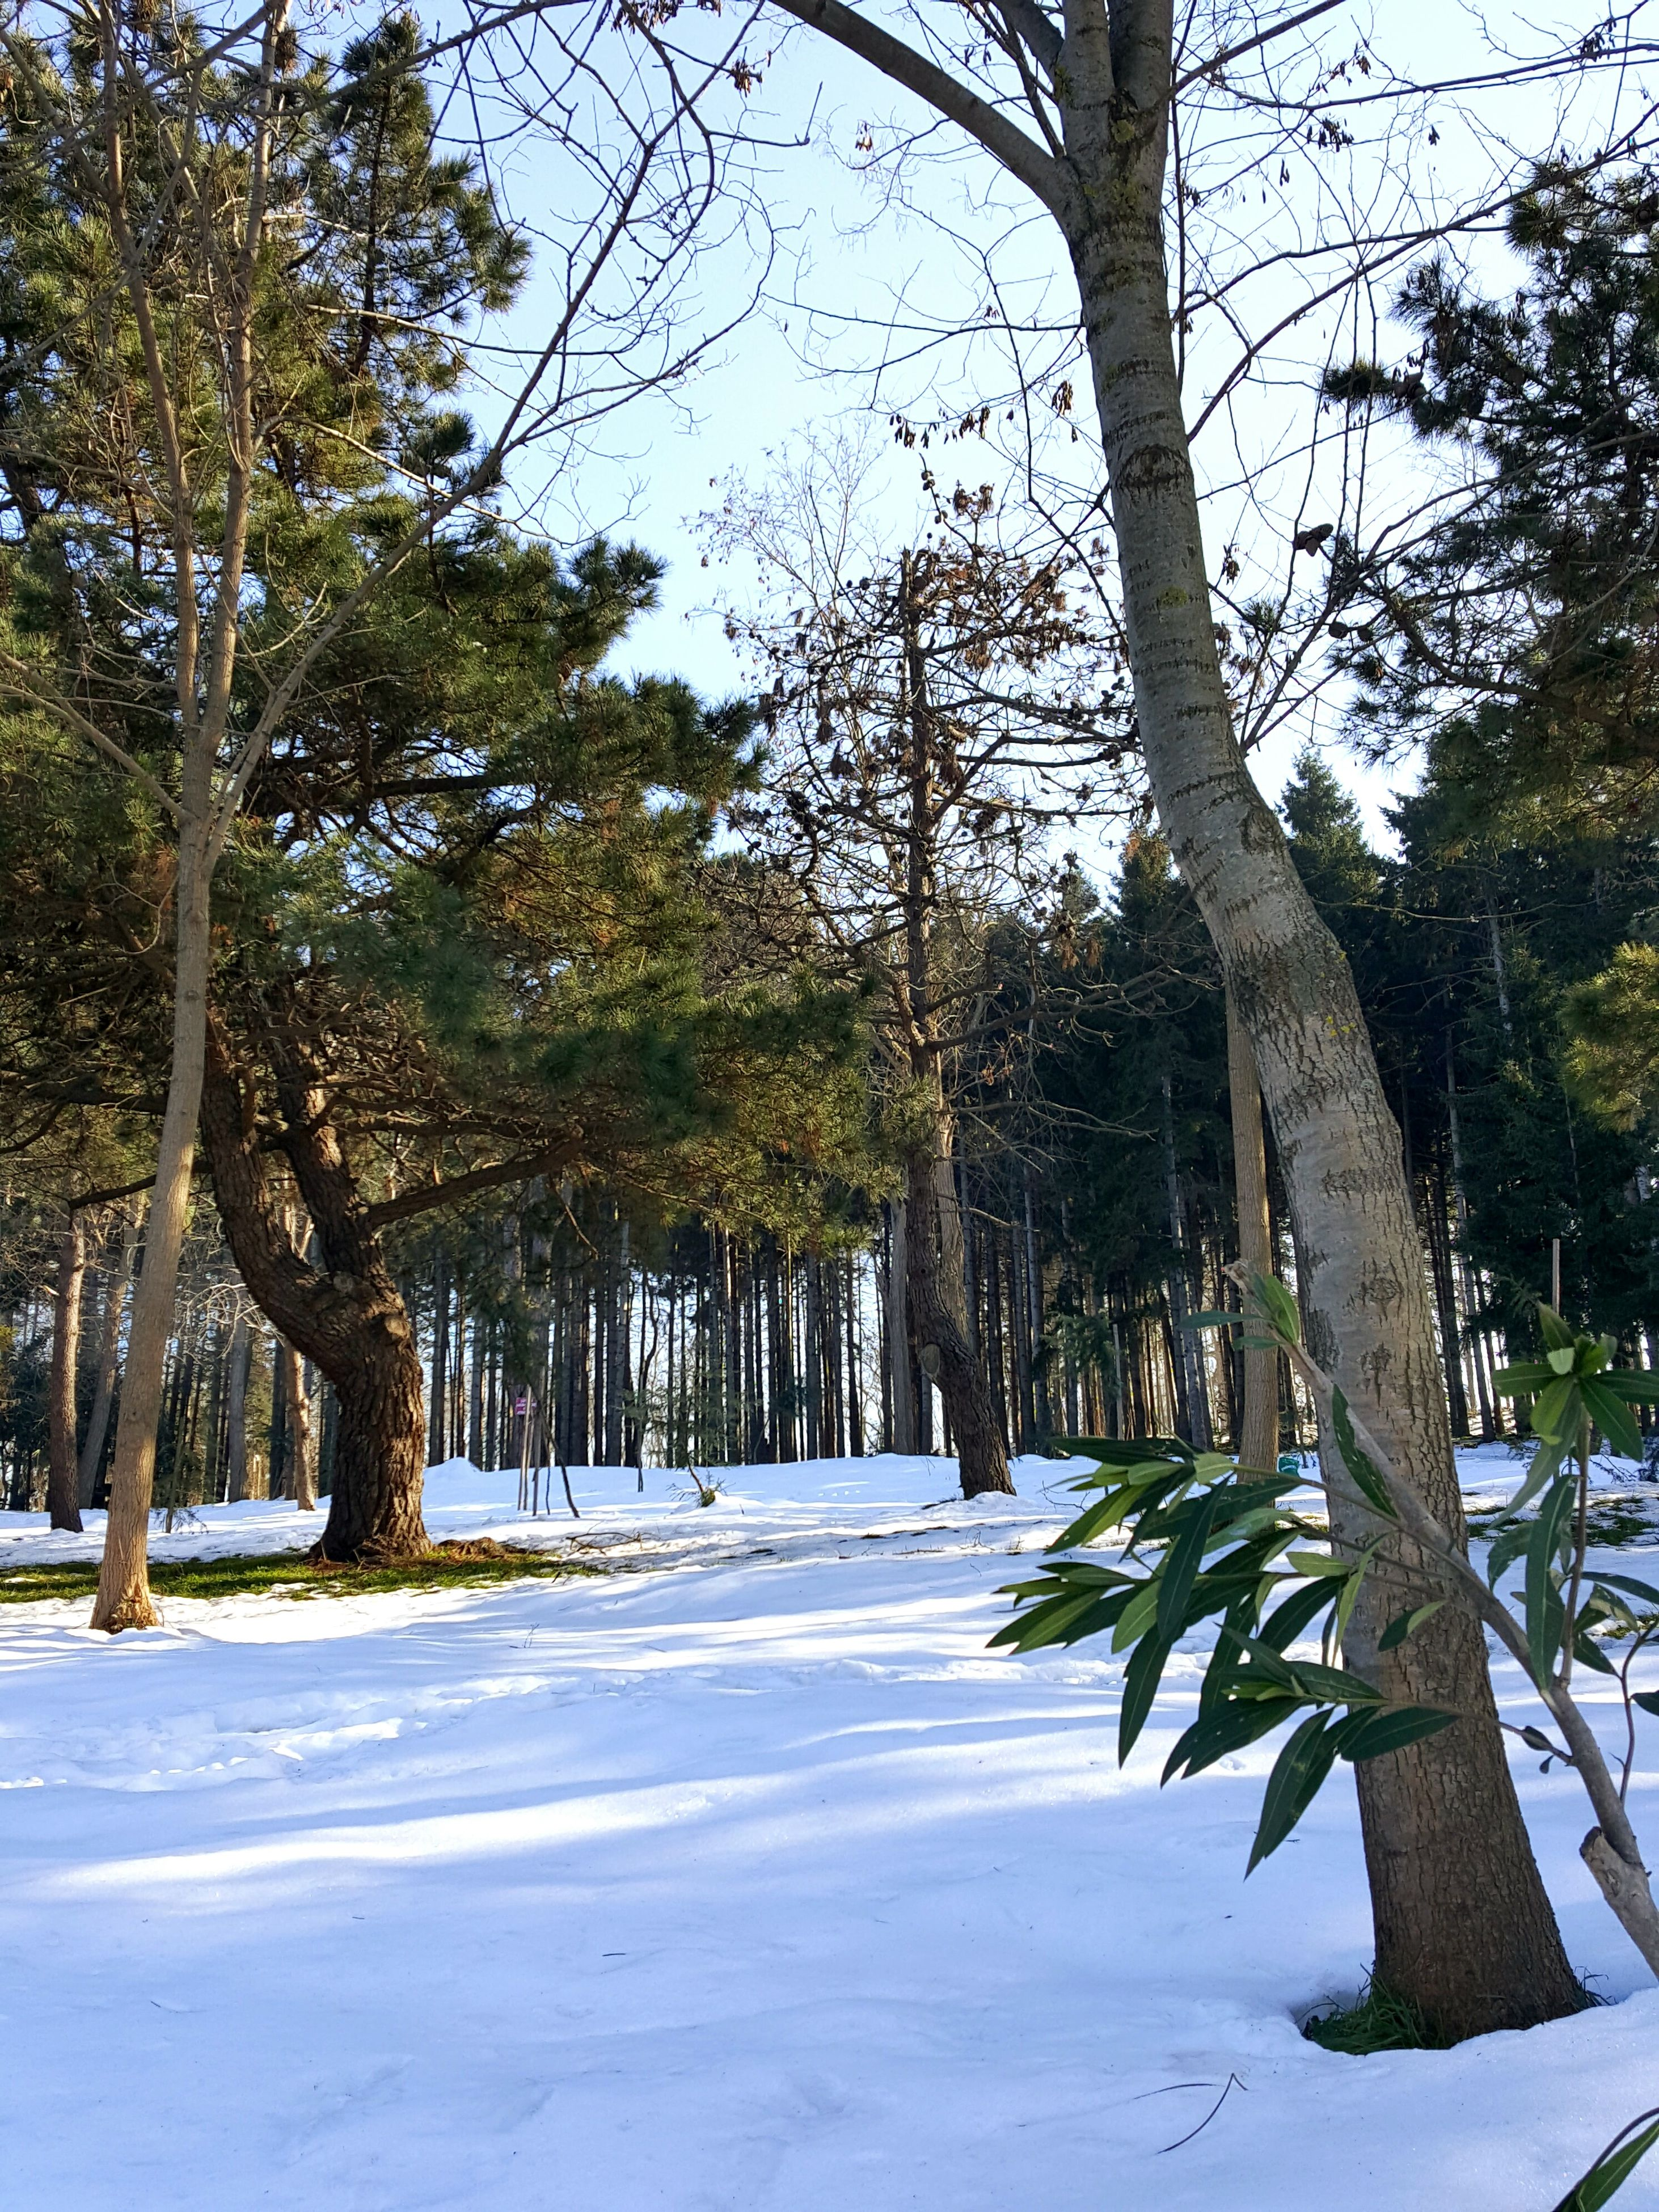 tree, snow, cold temperature, nature, winter, no people, tranquility, beauty in nature, outdoors, day, scenics, growth, sky, branch